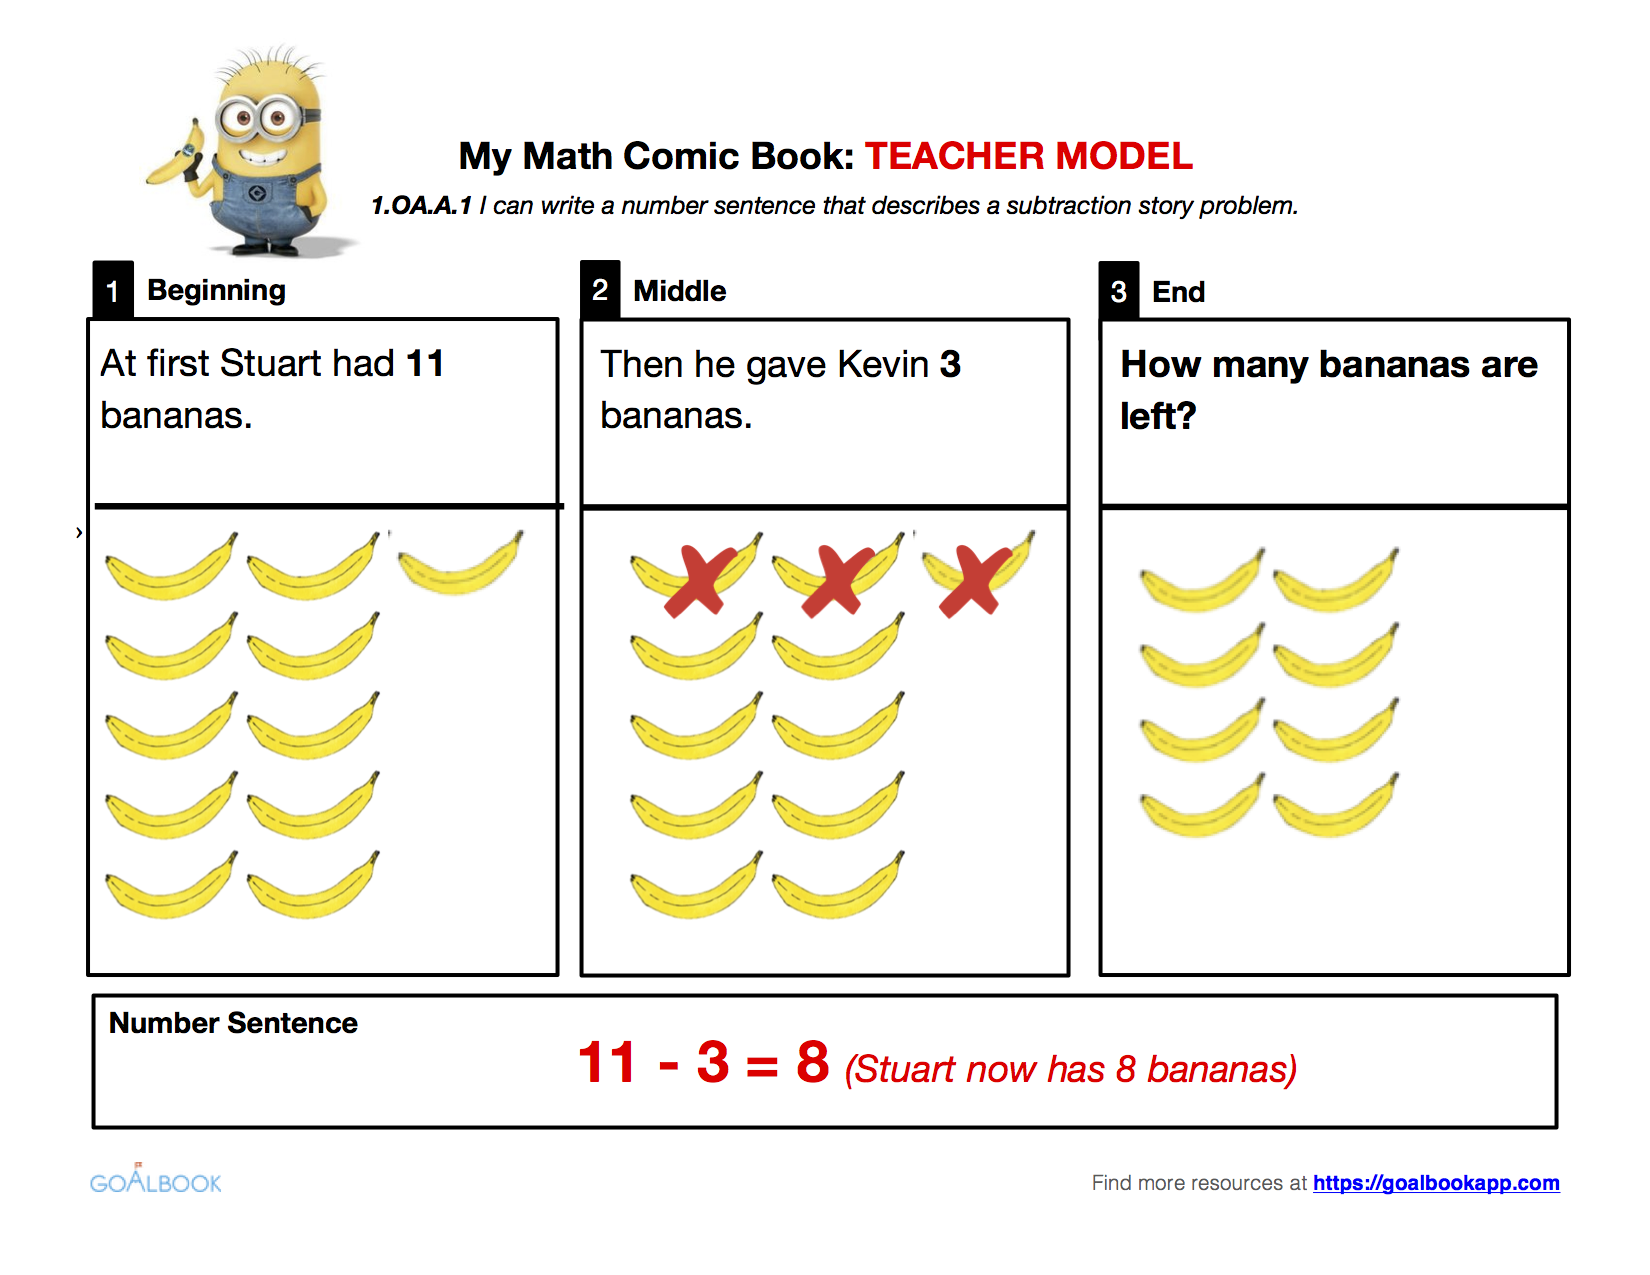 worksheet Subtraction To 20 1 oa 6 add and subtract within 20 math operations algebraic comic book minions subtraction 20